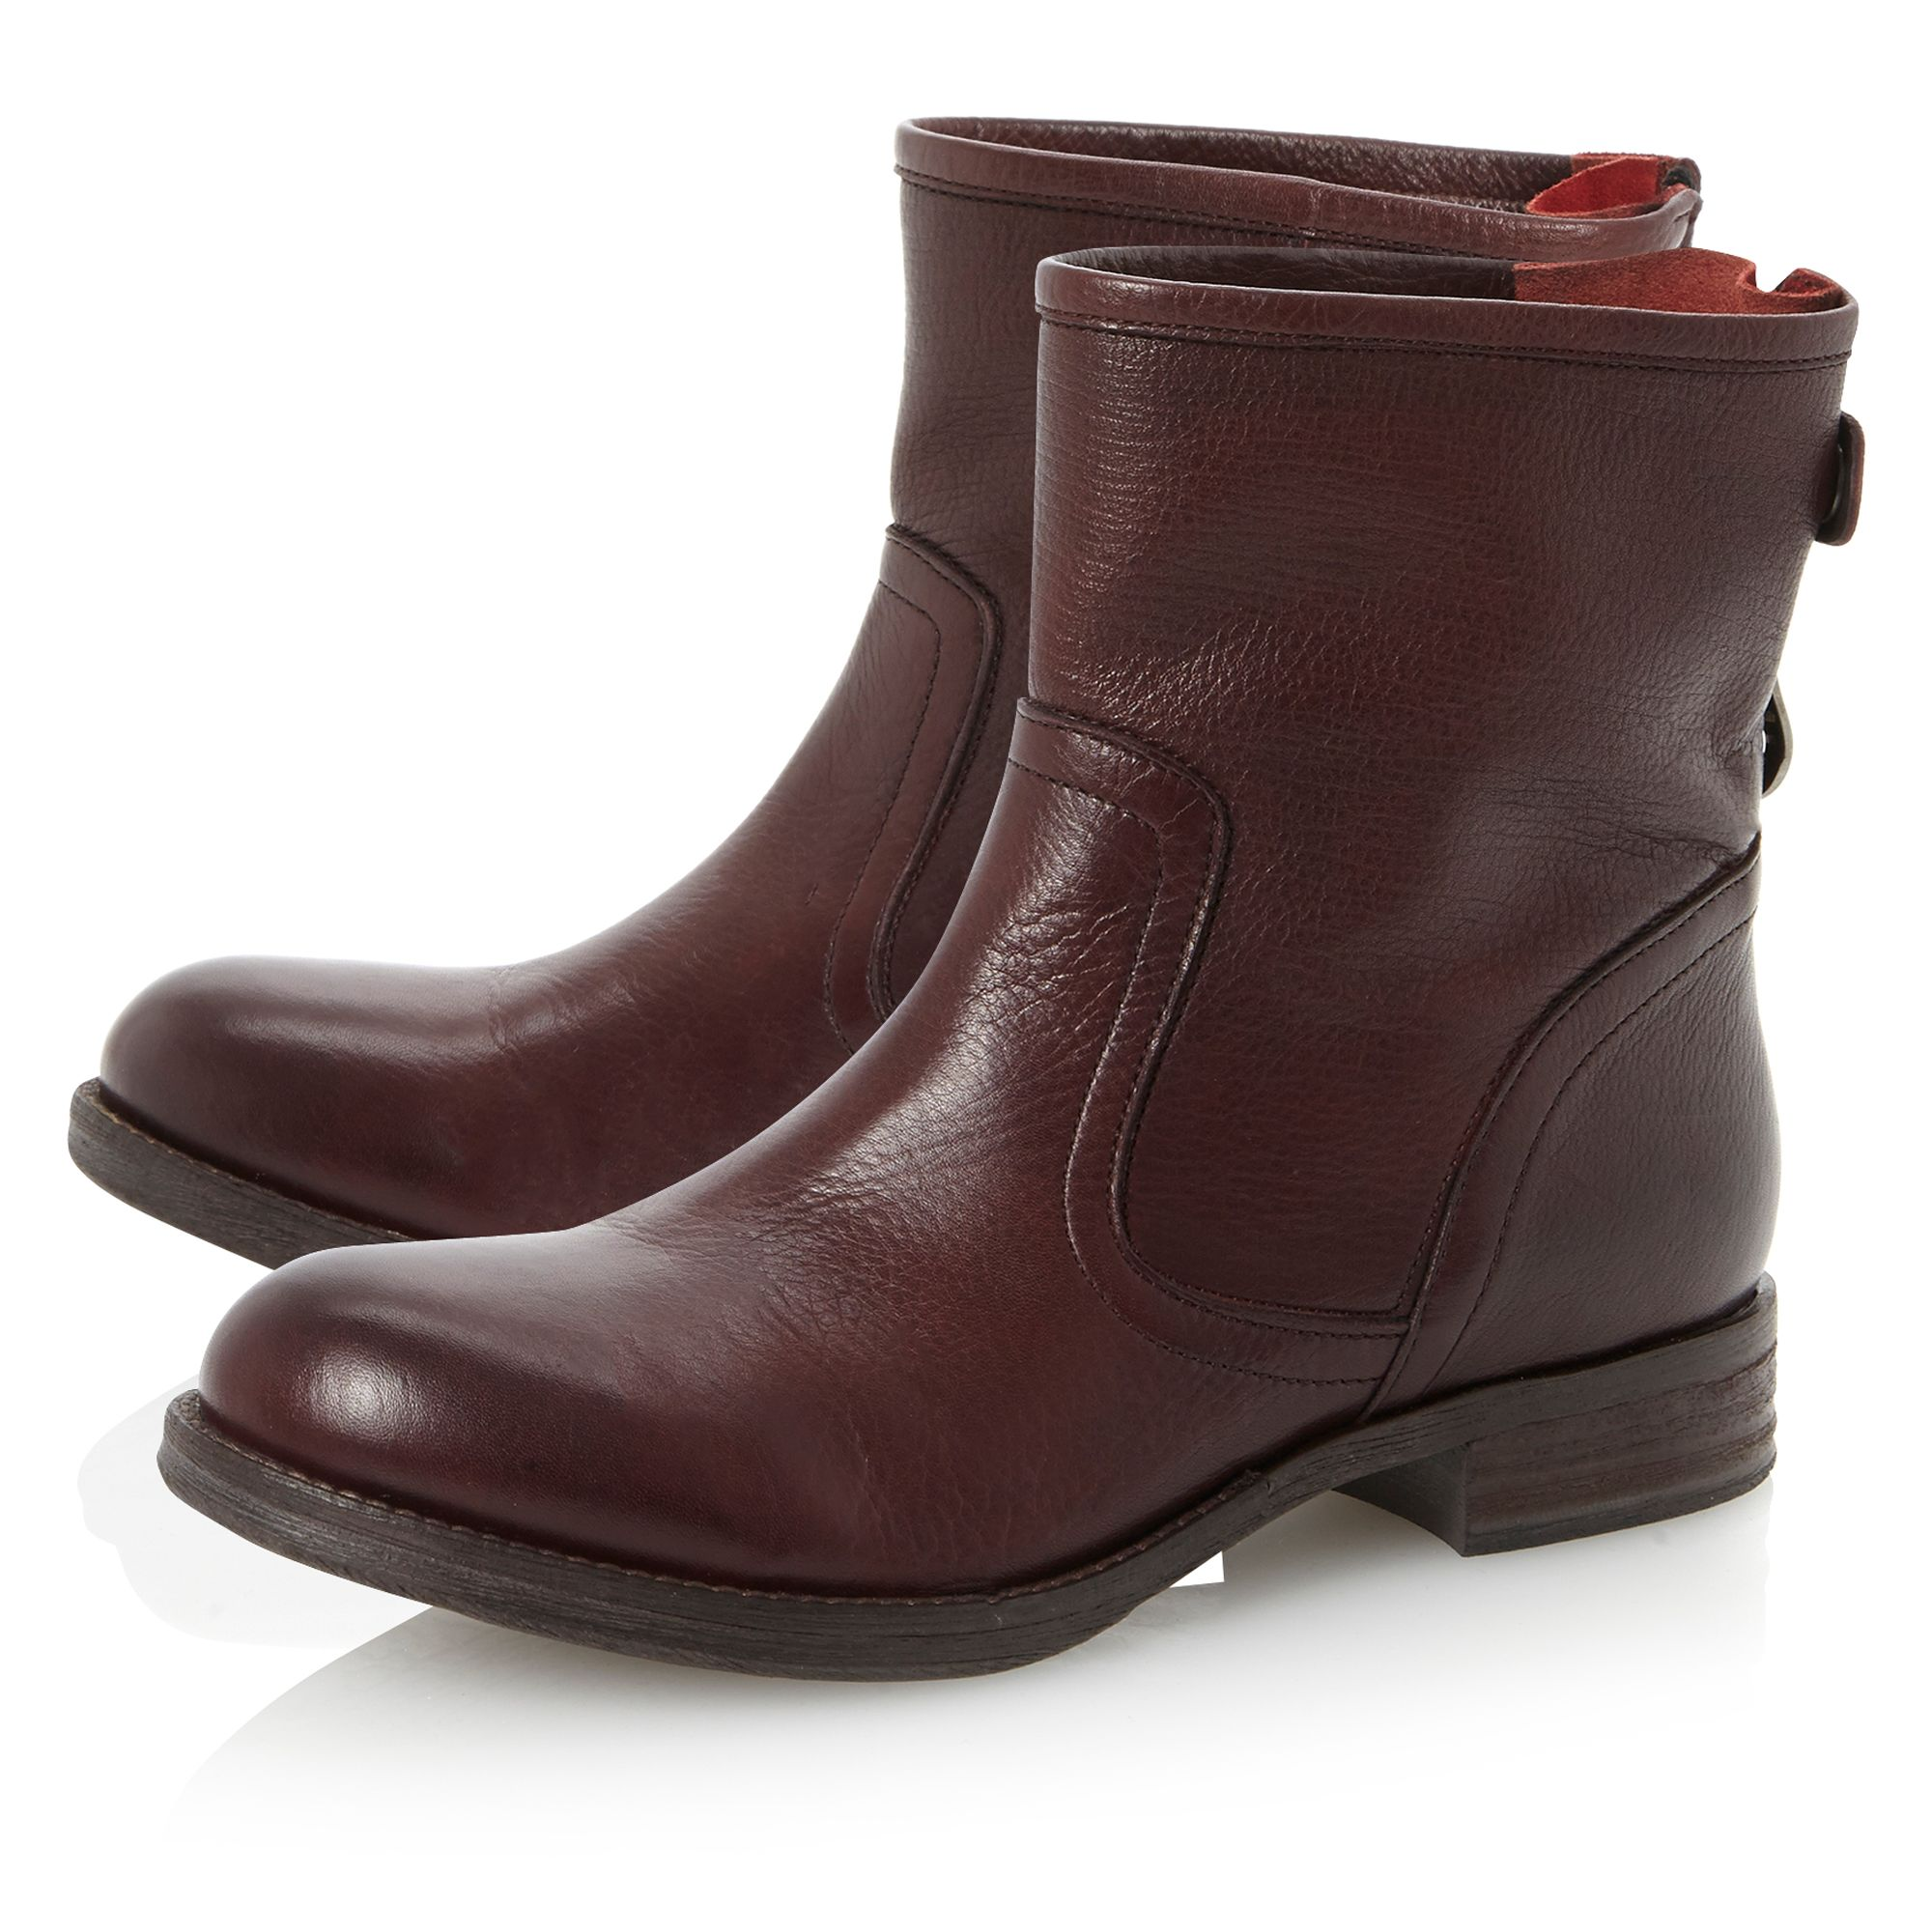 Pyrena ankle boots with bellows